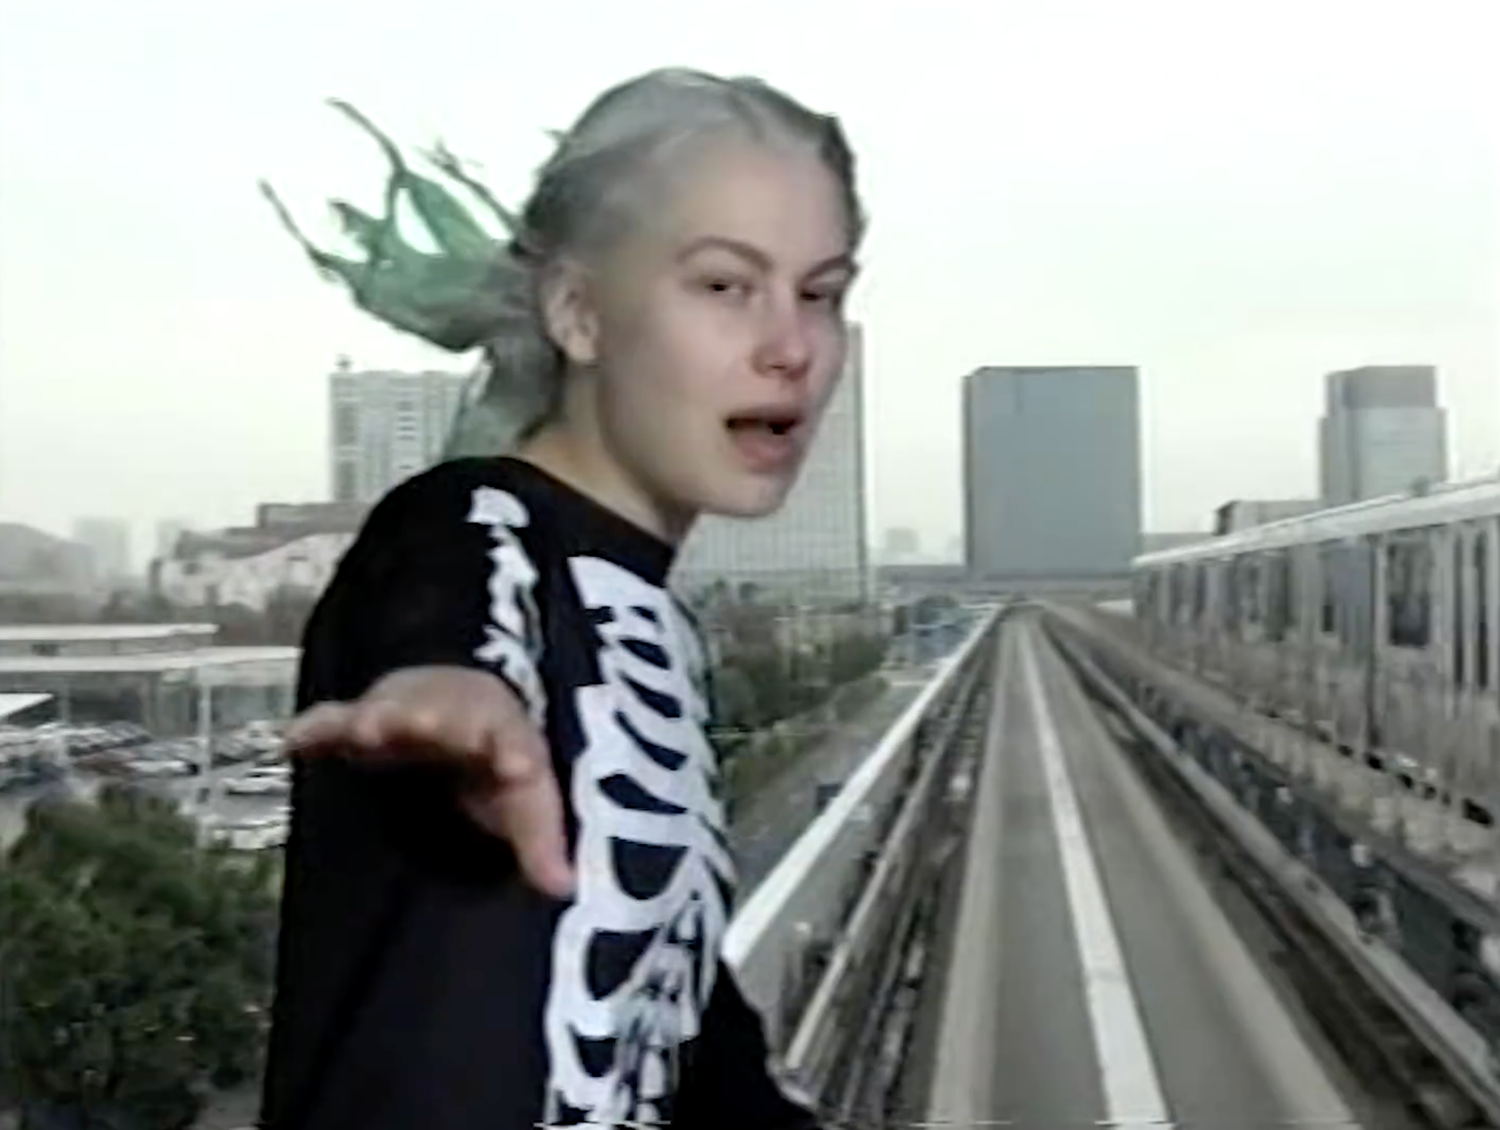 Photograph of Phoebe Bridgers, a white woman in her early twenties with bleached blond hair died vaguely green. She is wearing a black long-sleeved t-shirt with a white skeleton pattern on the front and is standing in front of a greenscreen of a train on the tracks, so that it looks like she is standing on the train and riding it.